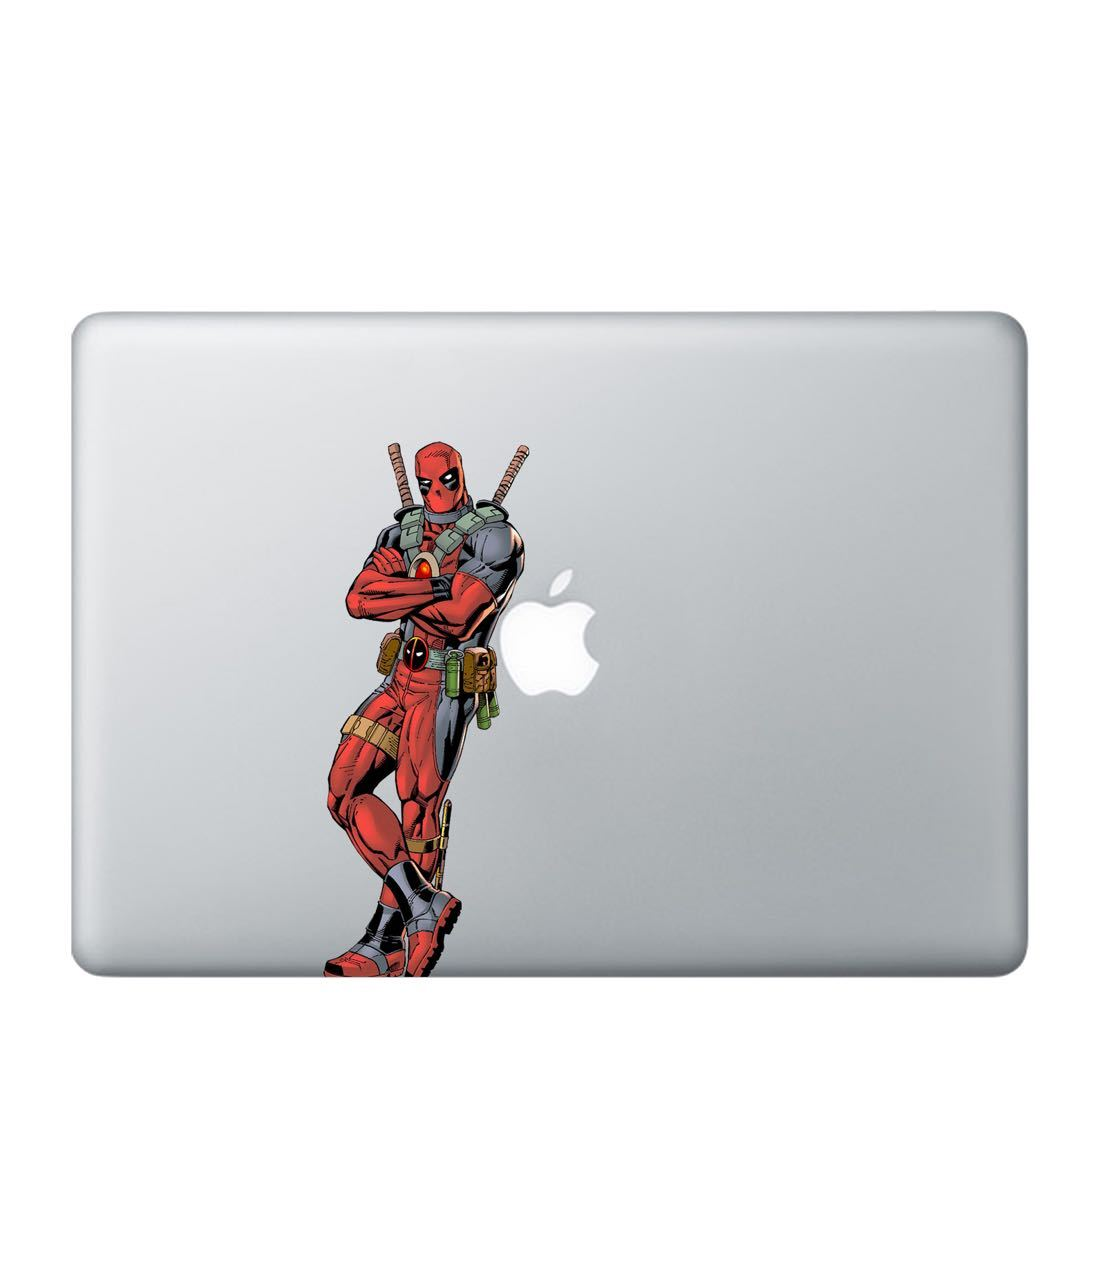 Deadpool Chill Laptop Decal by Macmerise -Macmerise - India - www.superherotoystore.com